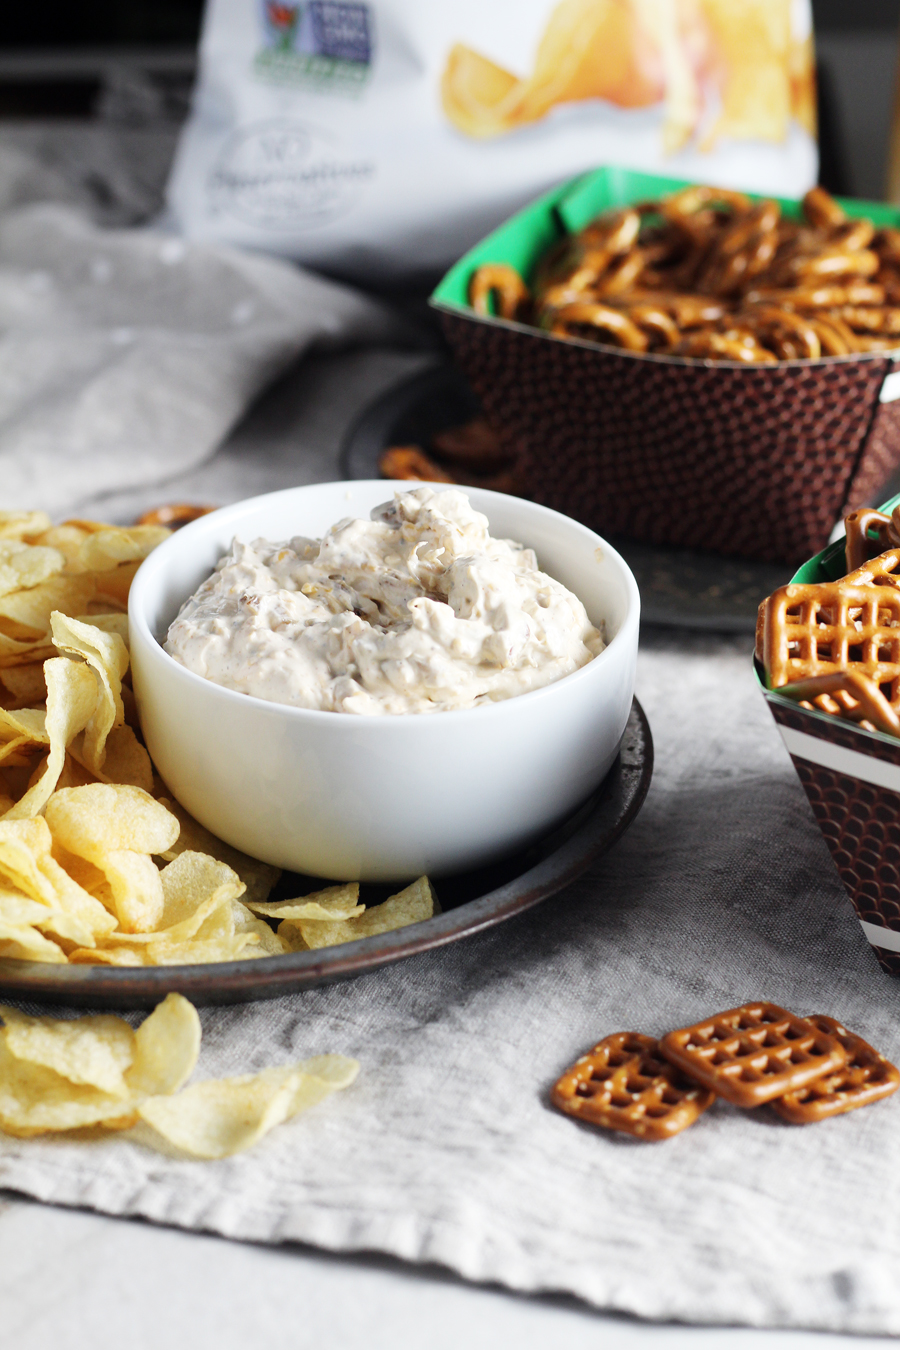 Delicious and savory homemade French onion dip